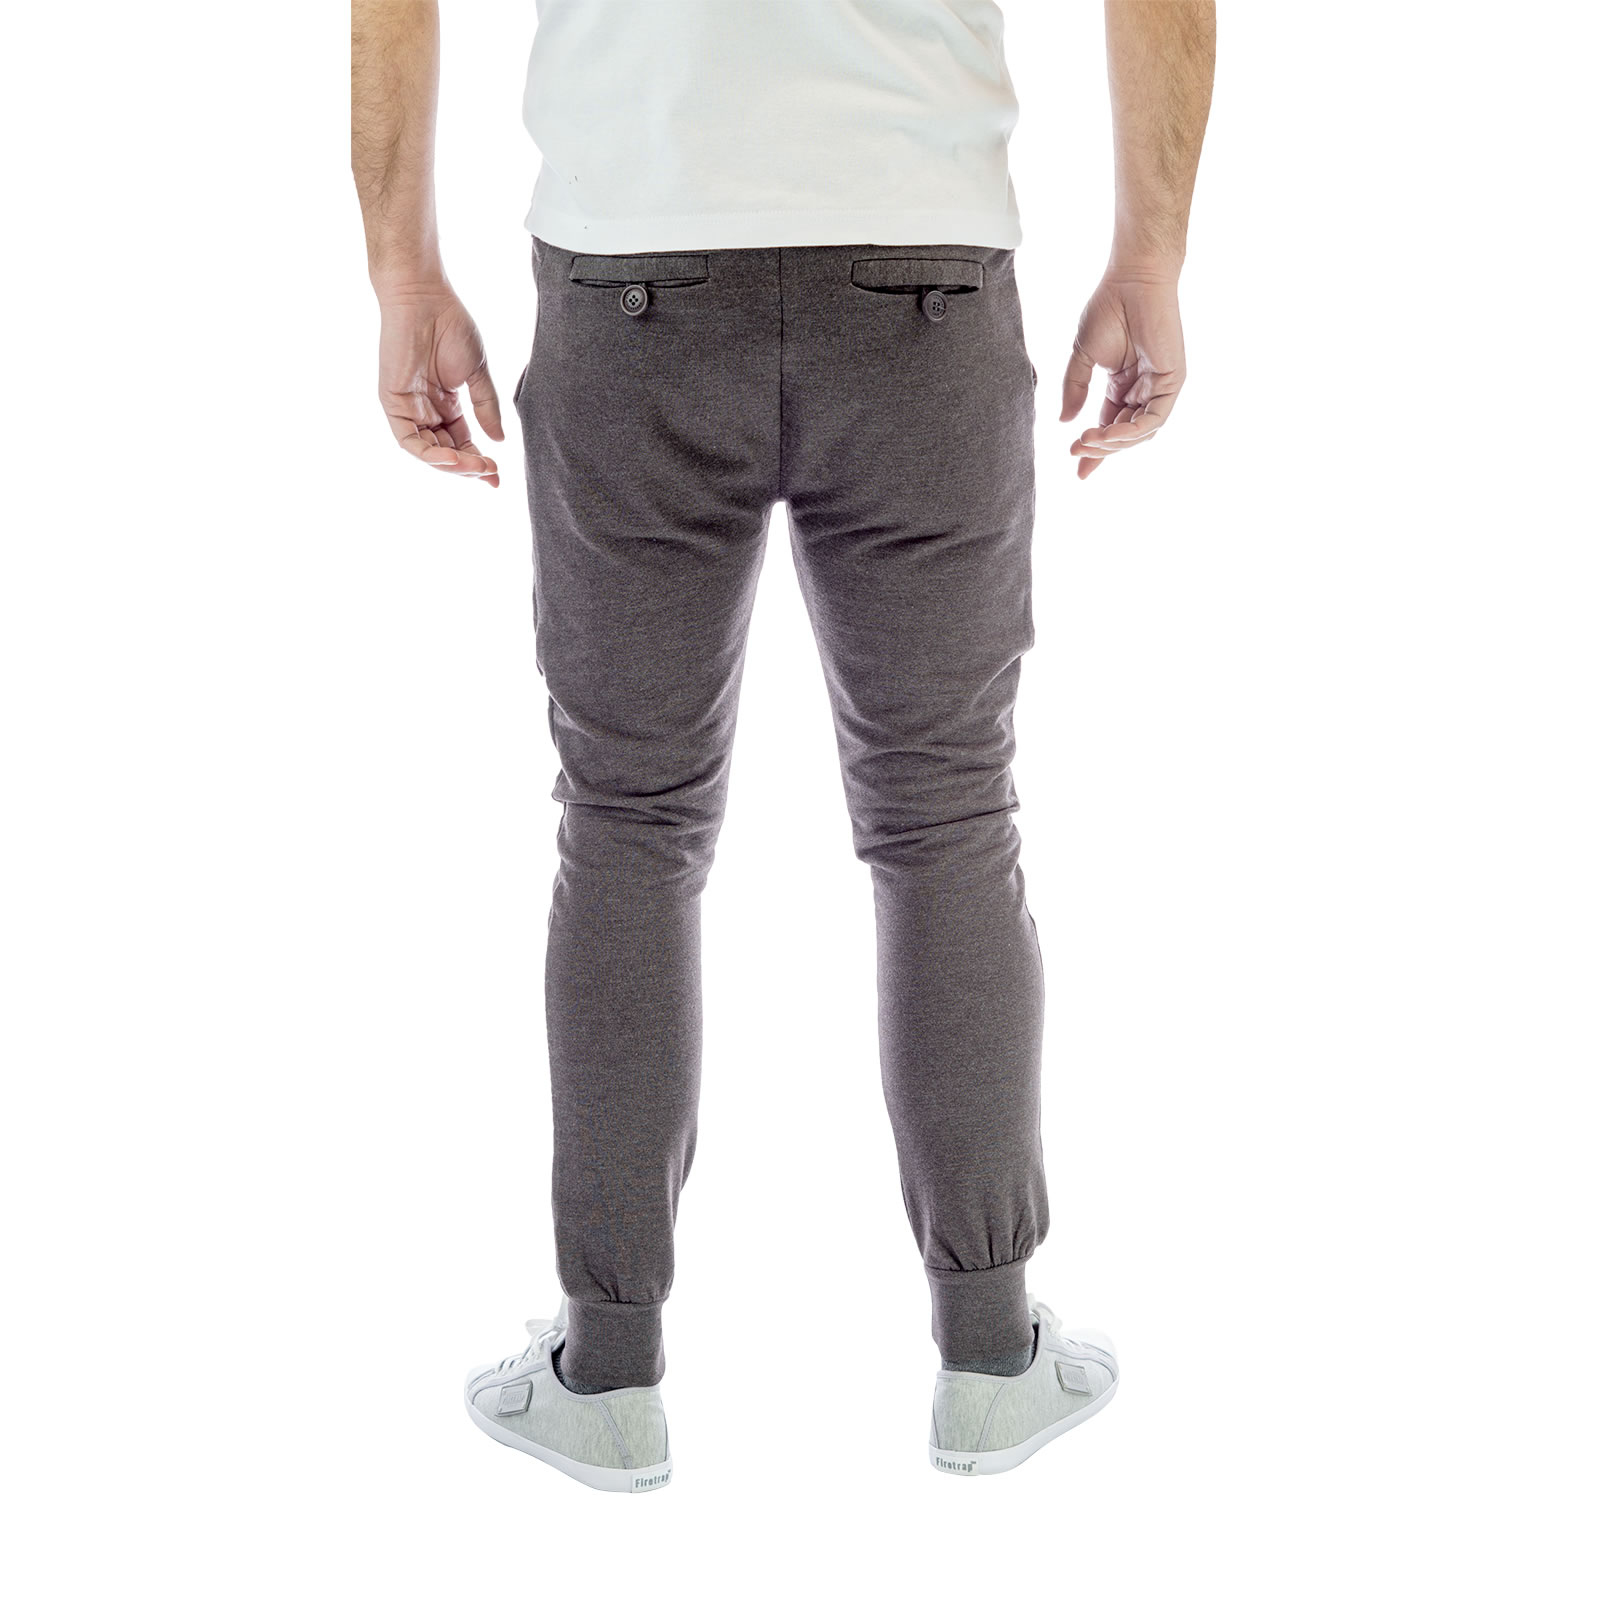 Super Comfortable Slim Fit Gym Joggers for men. 80/20 Cotton/Polyester Hat and Beyond WIV Mens Jogger Pants Biker Slim Fit Casual Fleece Active Elastic 1VWA by Hat and Beyond. $ - $ $ 19 $ 42 99 Prime. FREE Shipping on .